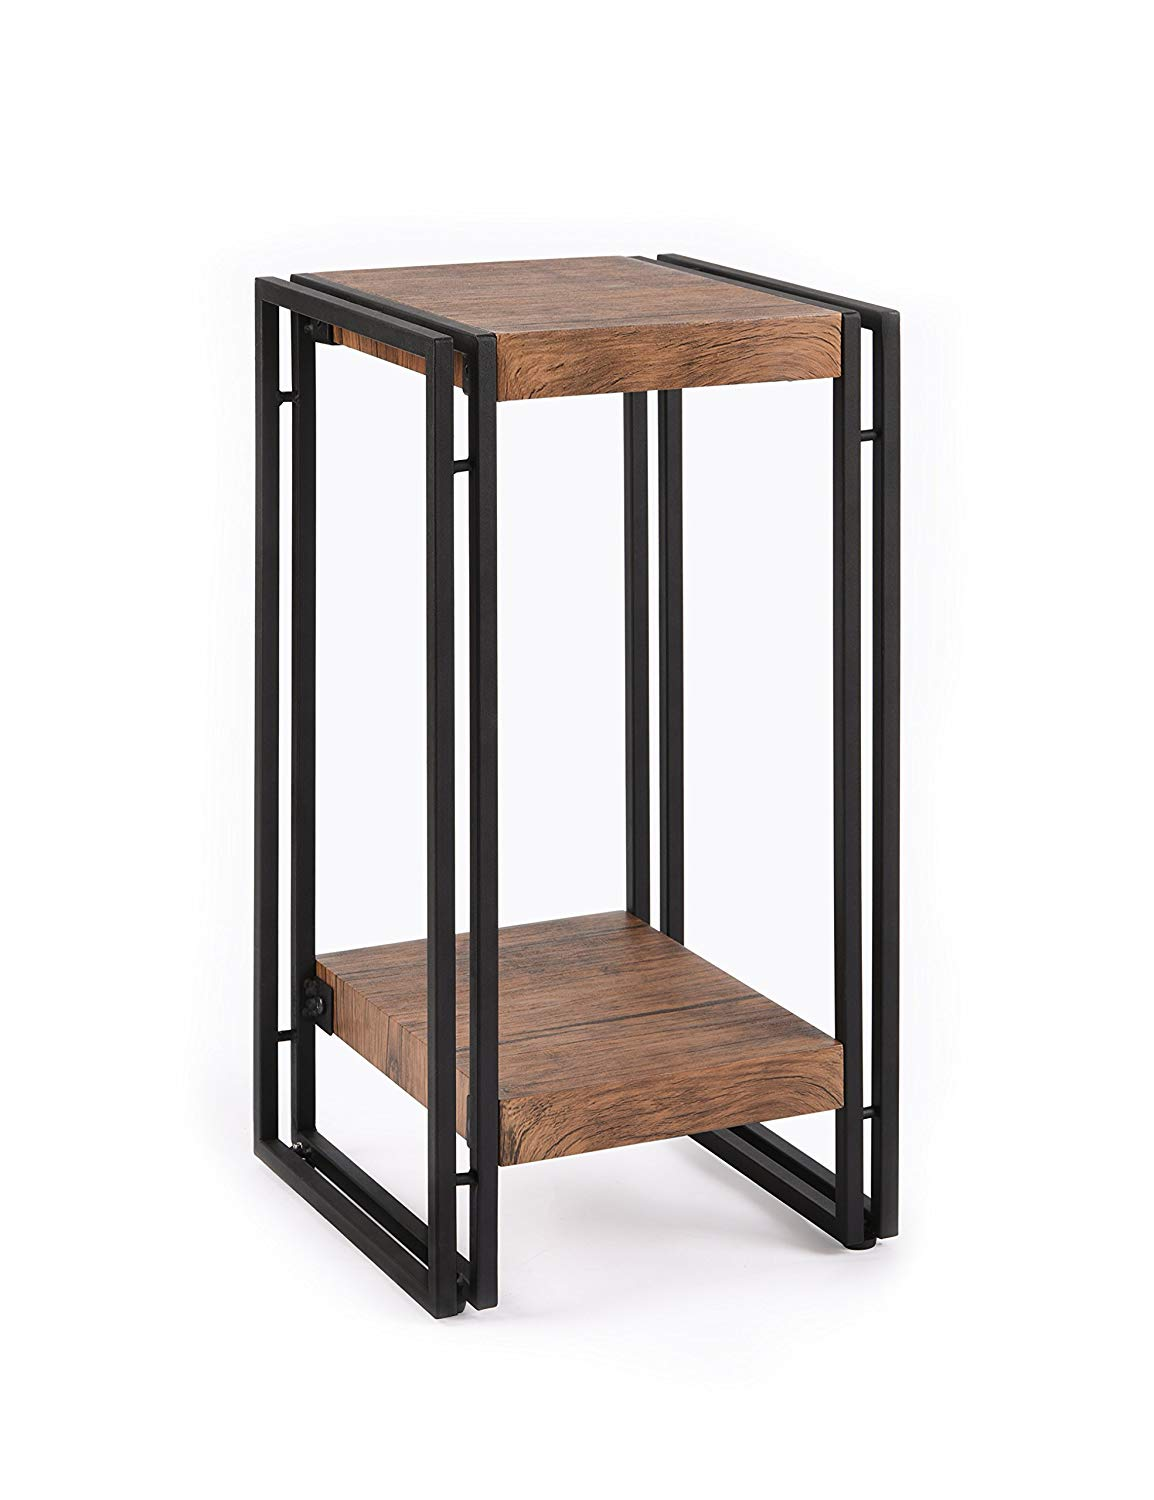 fivegiven accent side table for small spaces end set rosewood tall tables coffee brown living room bedroom modern wood and metal kitchen dining diy indoor puppy pen allen with